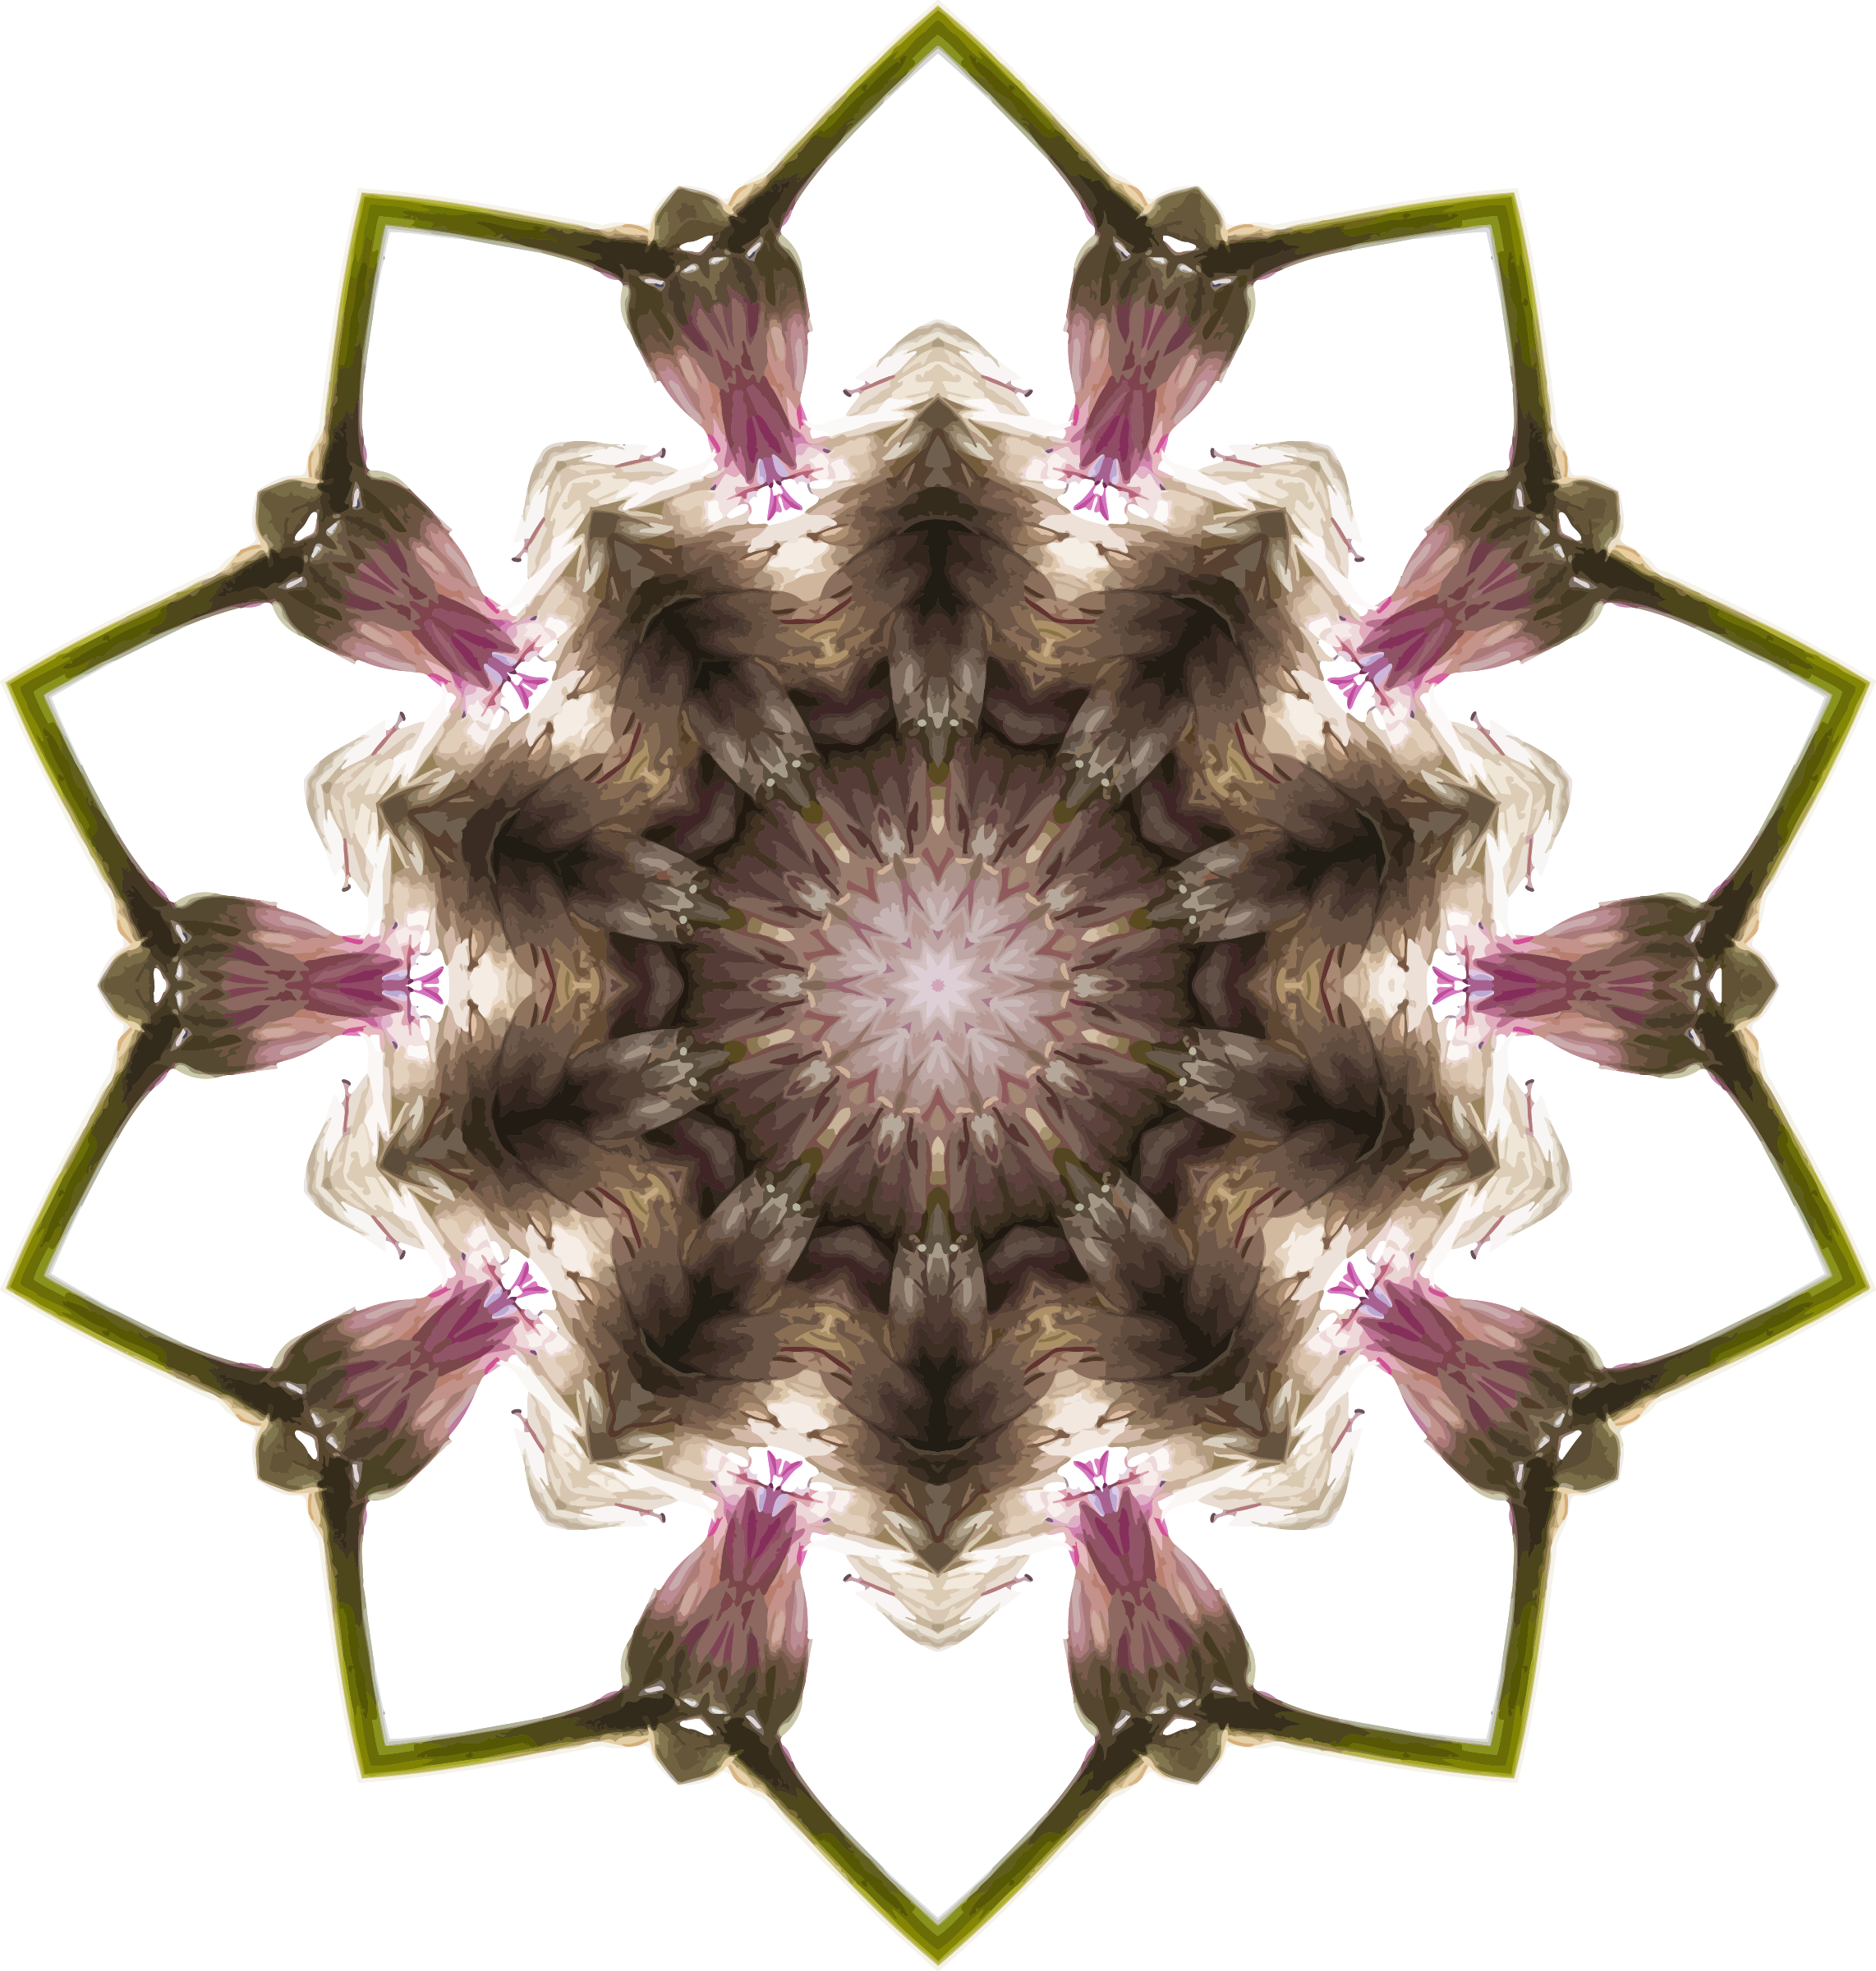 Wildflower kaleidoscope 8 by Firkin